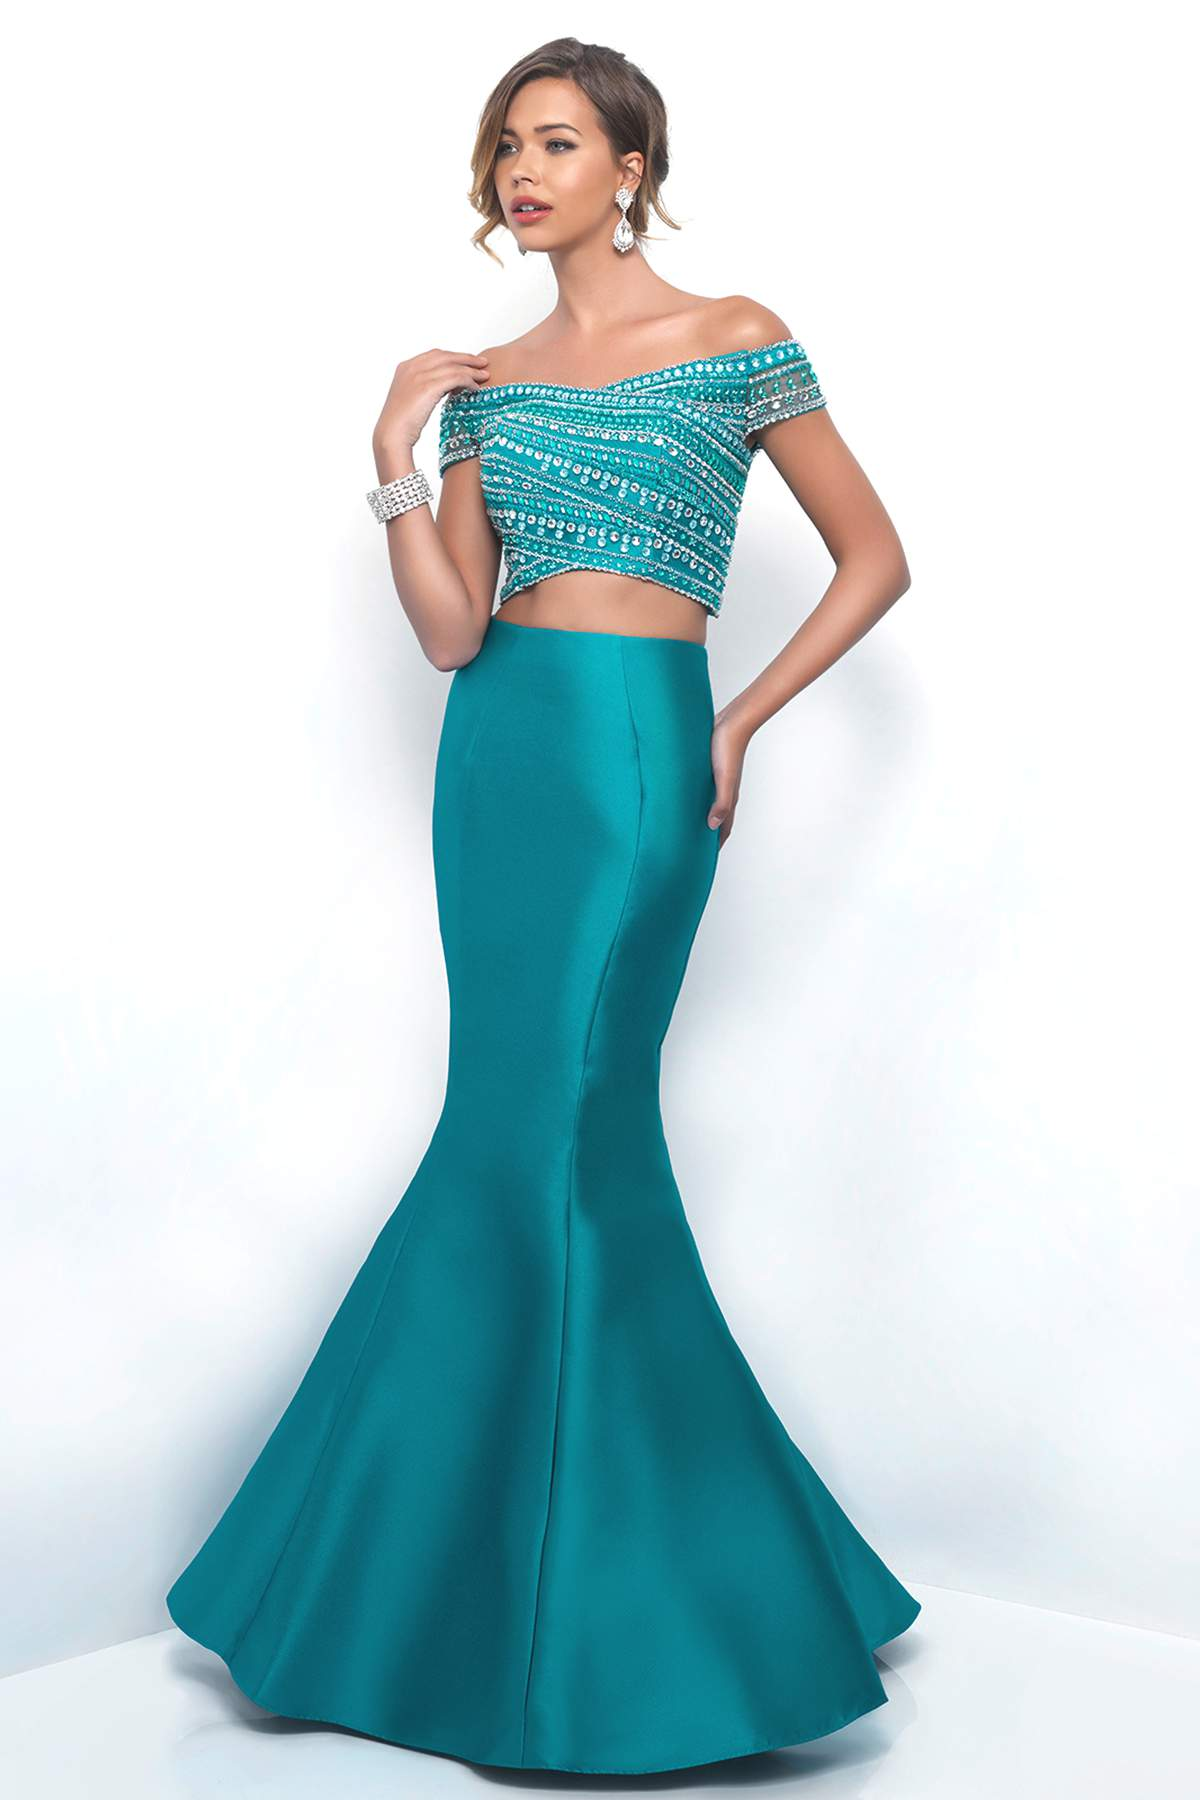 Style 11295 by Blush by Alexia - Find Your Dream Dress